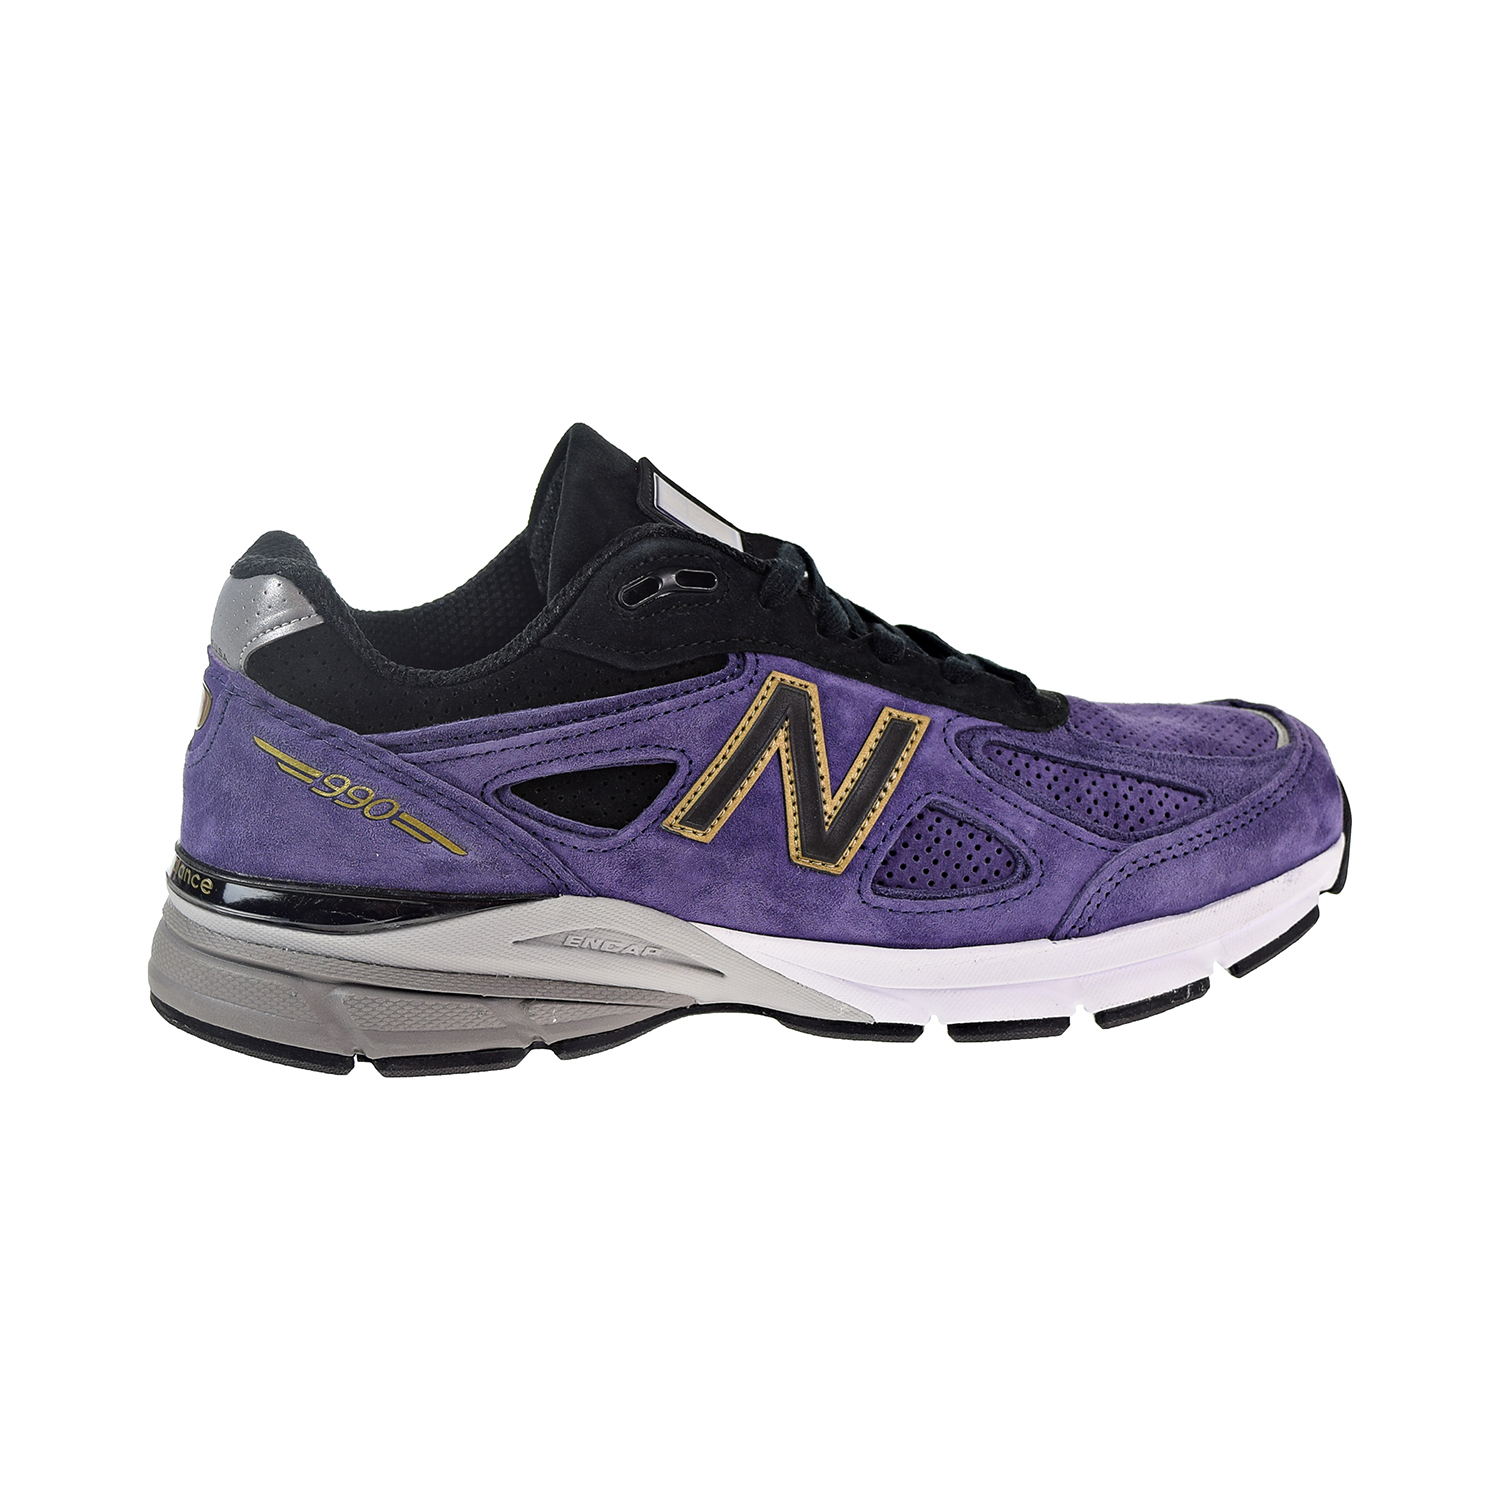 promo code cc651 28499 Details about New Balance 990 Men's Shoes Black/Wild Indigo M990BP4